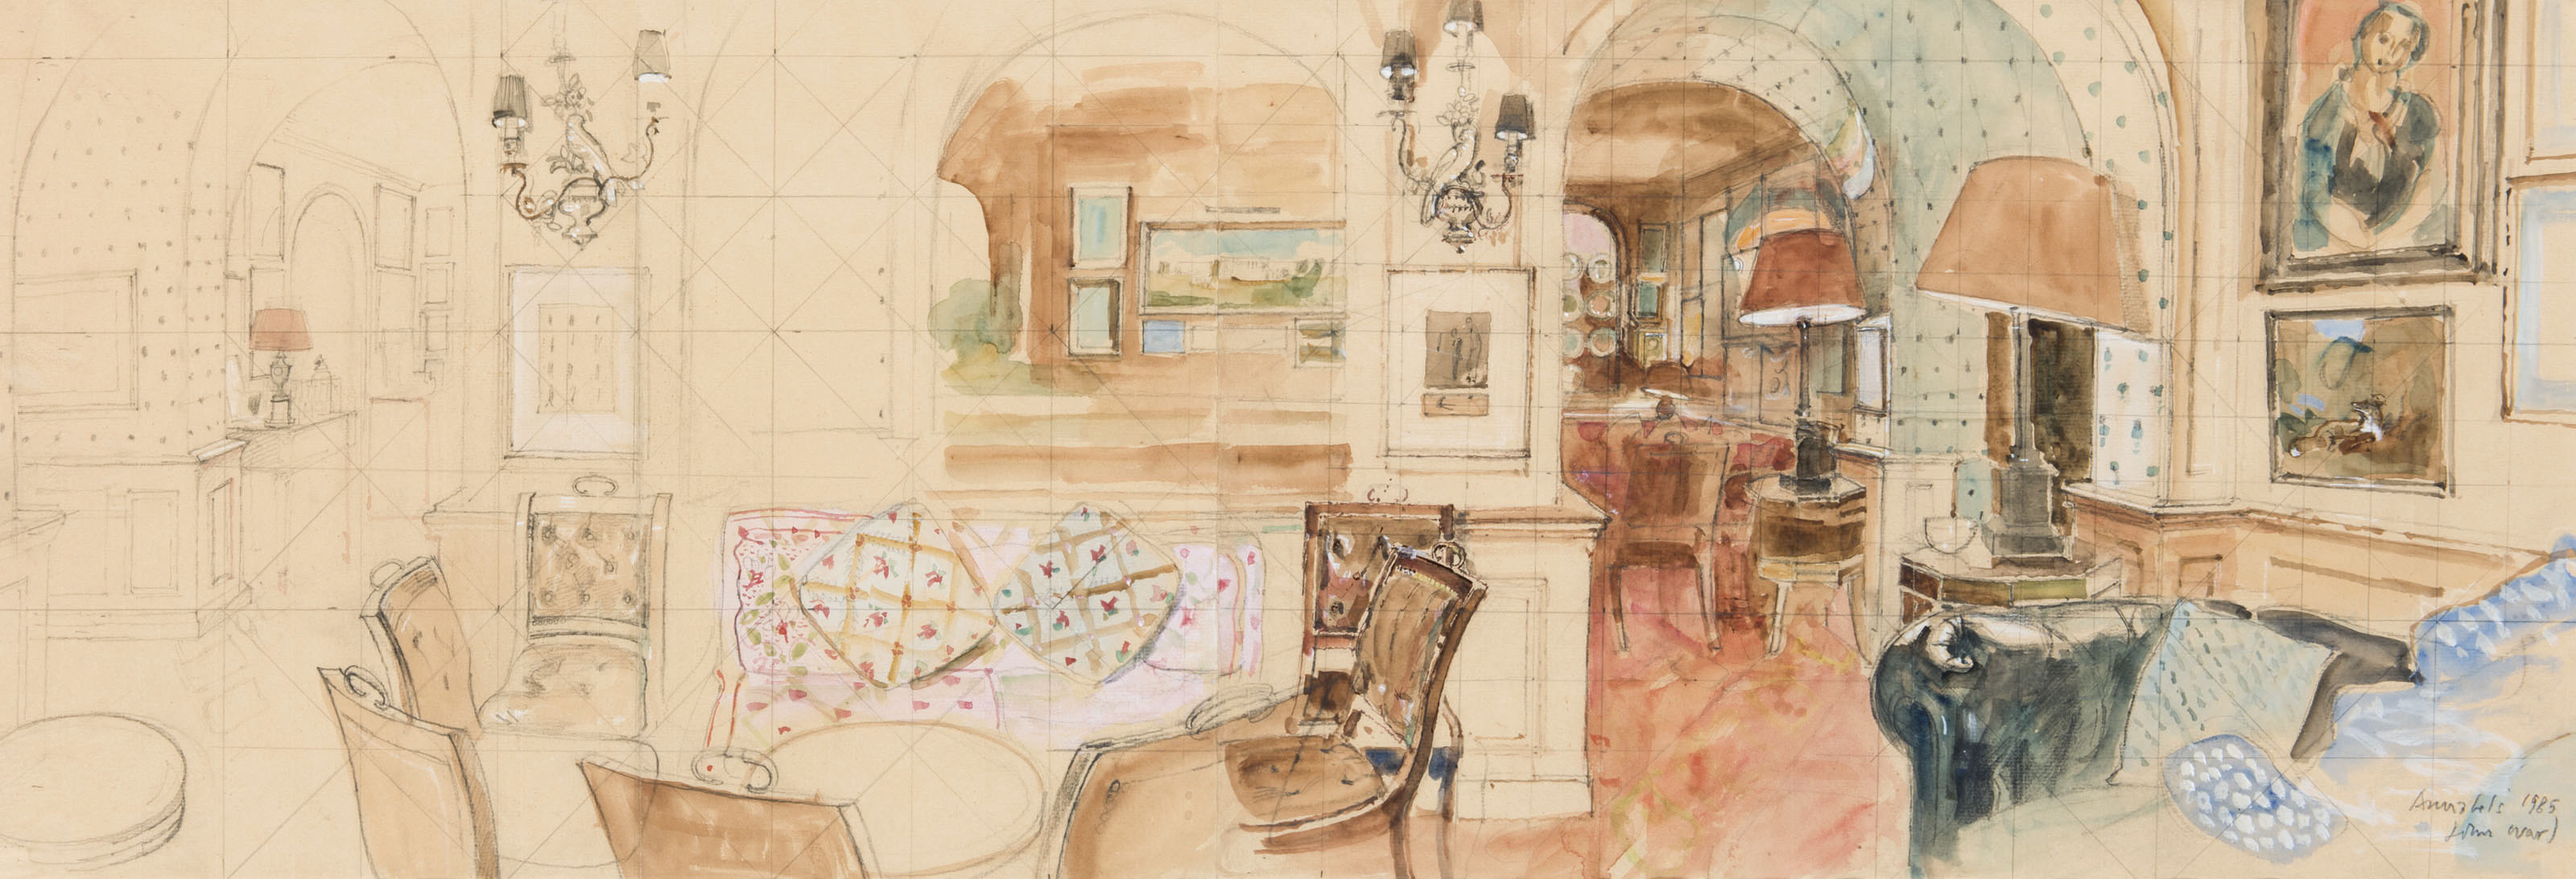 Annabel's, Study for The Founder Members